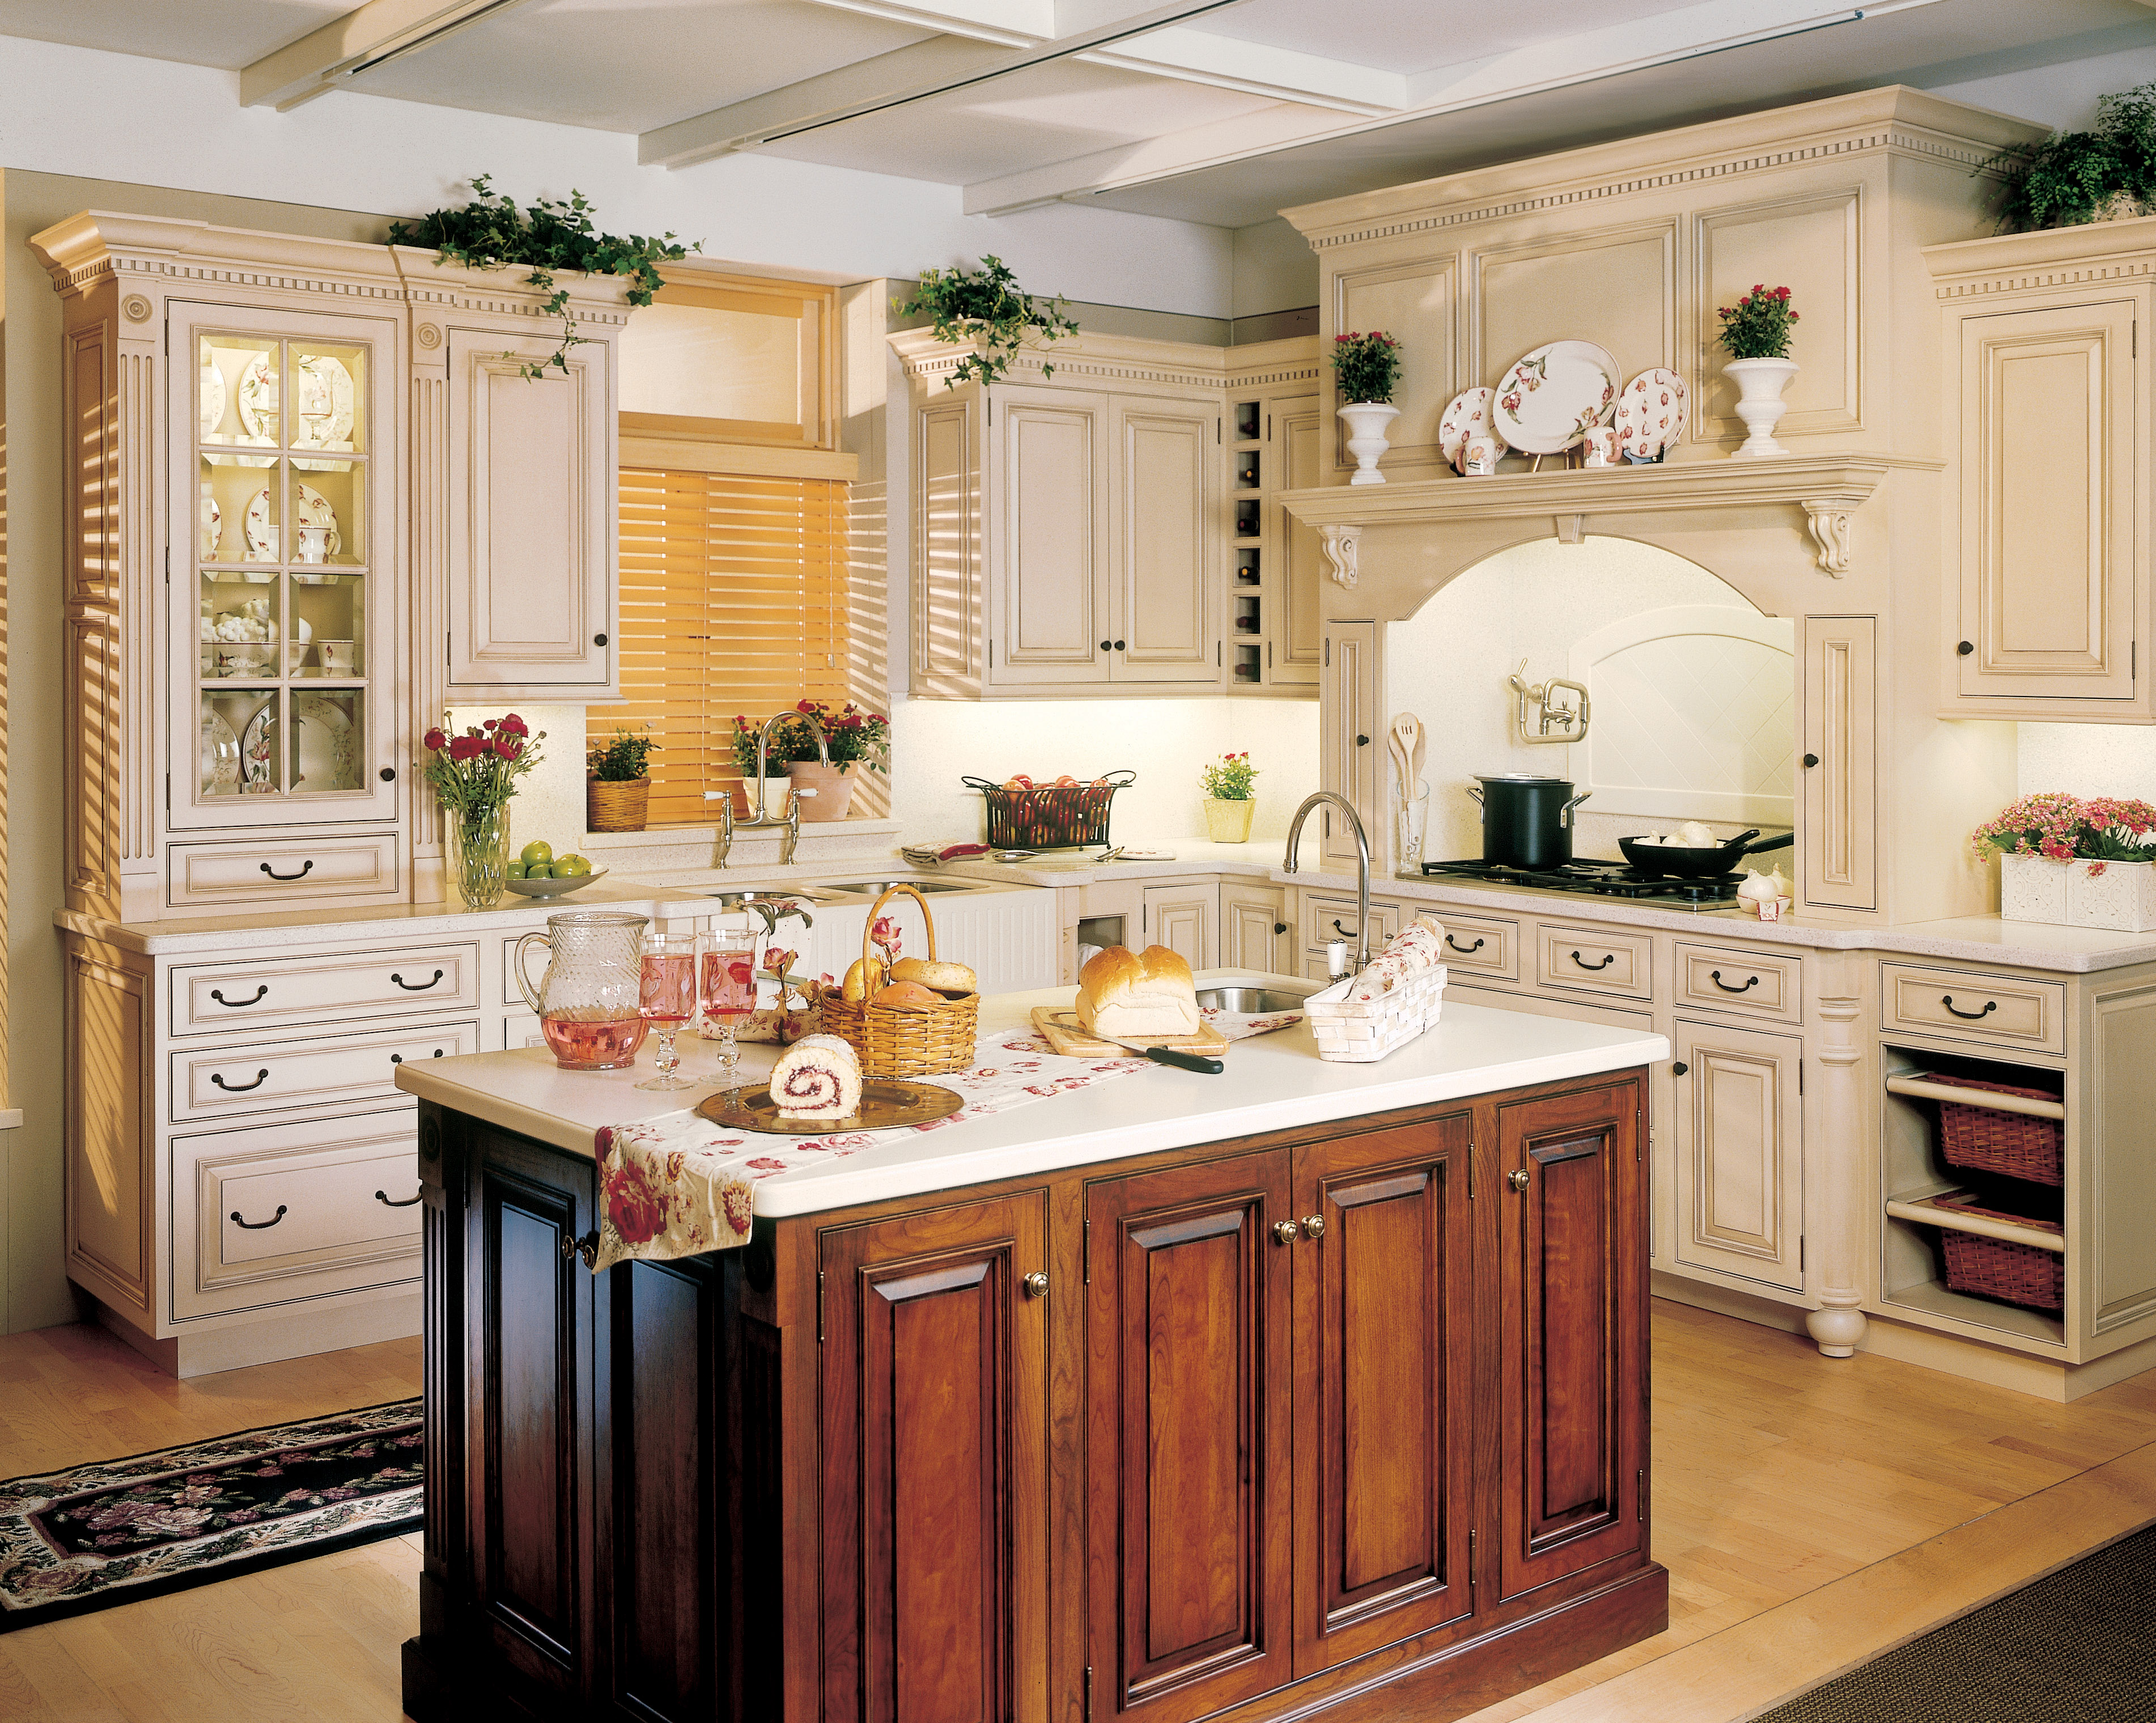 Traditional kitchens photo gallery broward custom kitchens for Traditional kitchen photo gallery